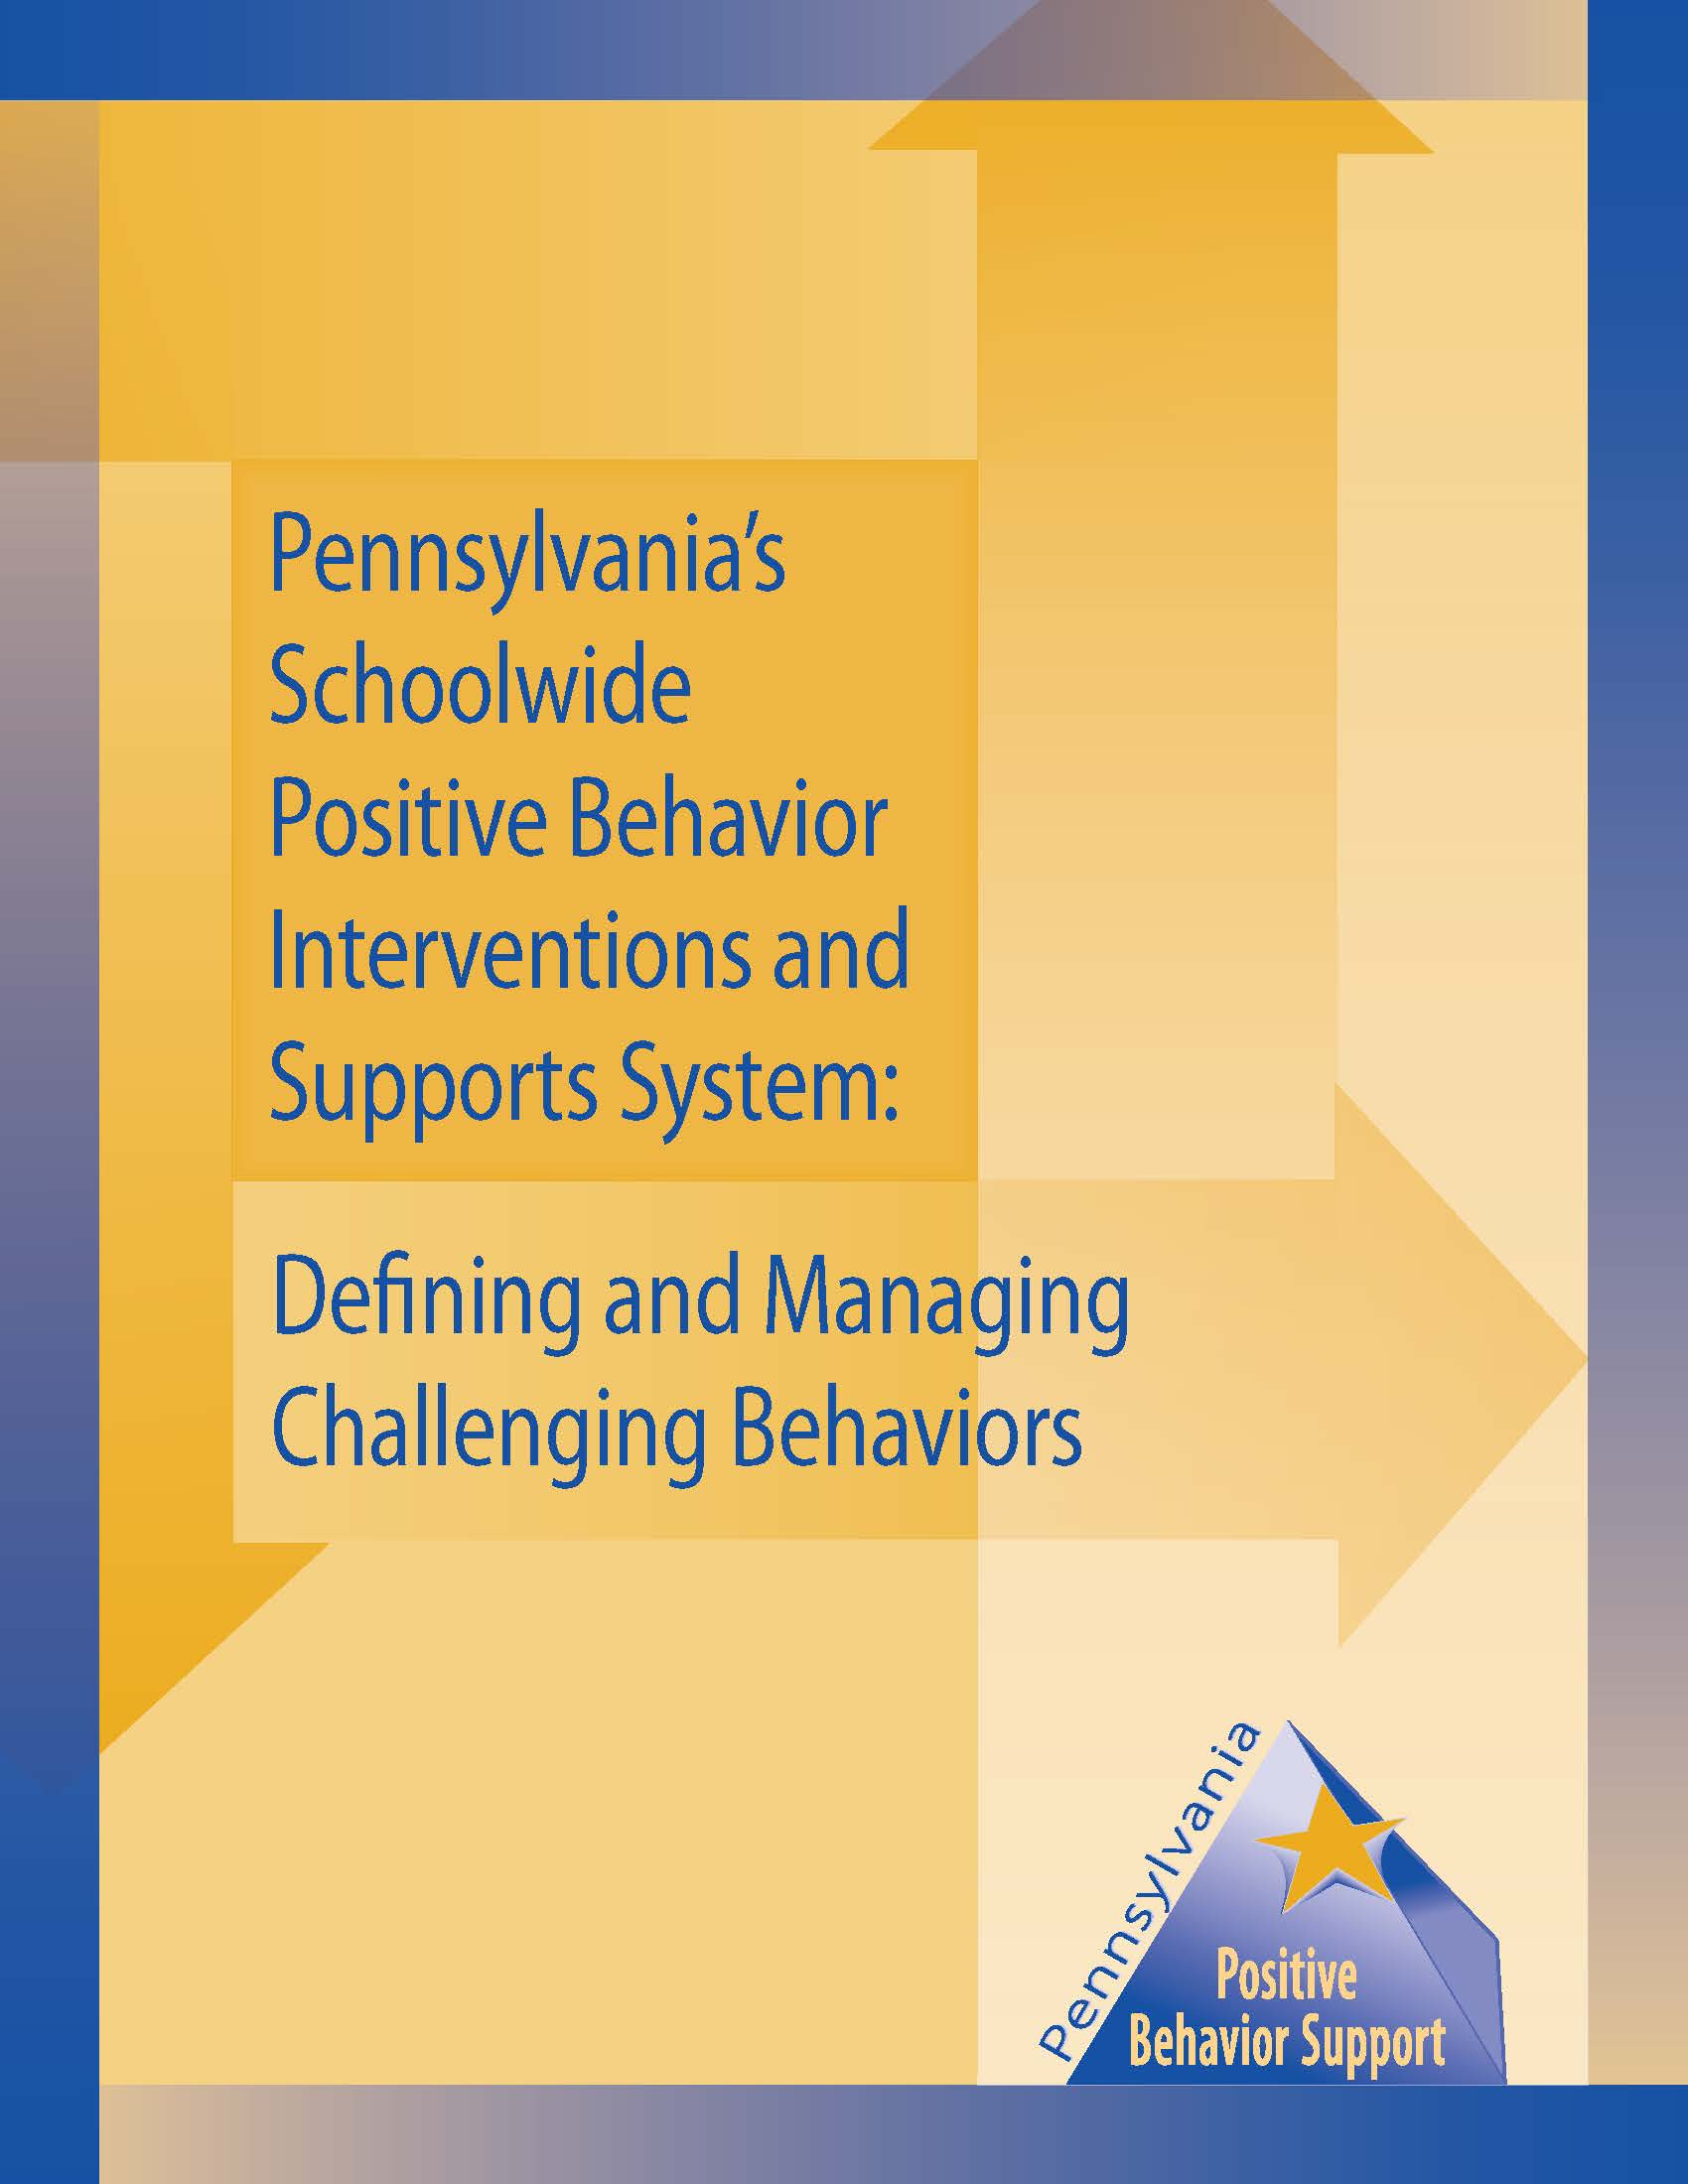 Pennsylvania's Schoolwide Positive Behavior Interventions and Supports System: Defining and Managing Challenging Behaviors